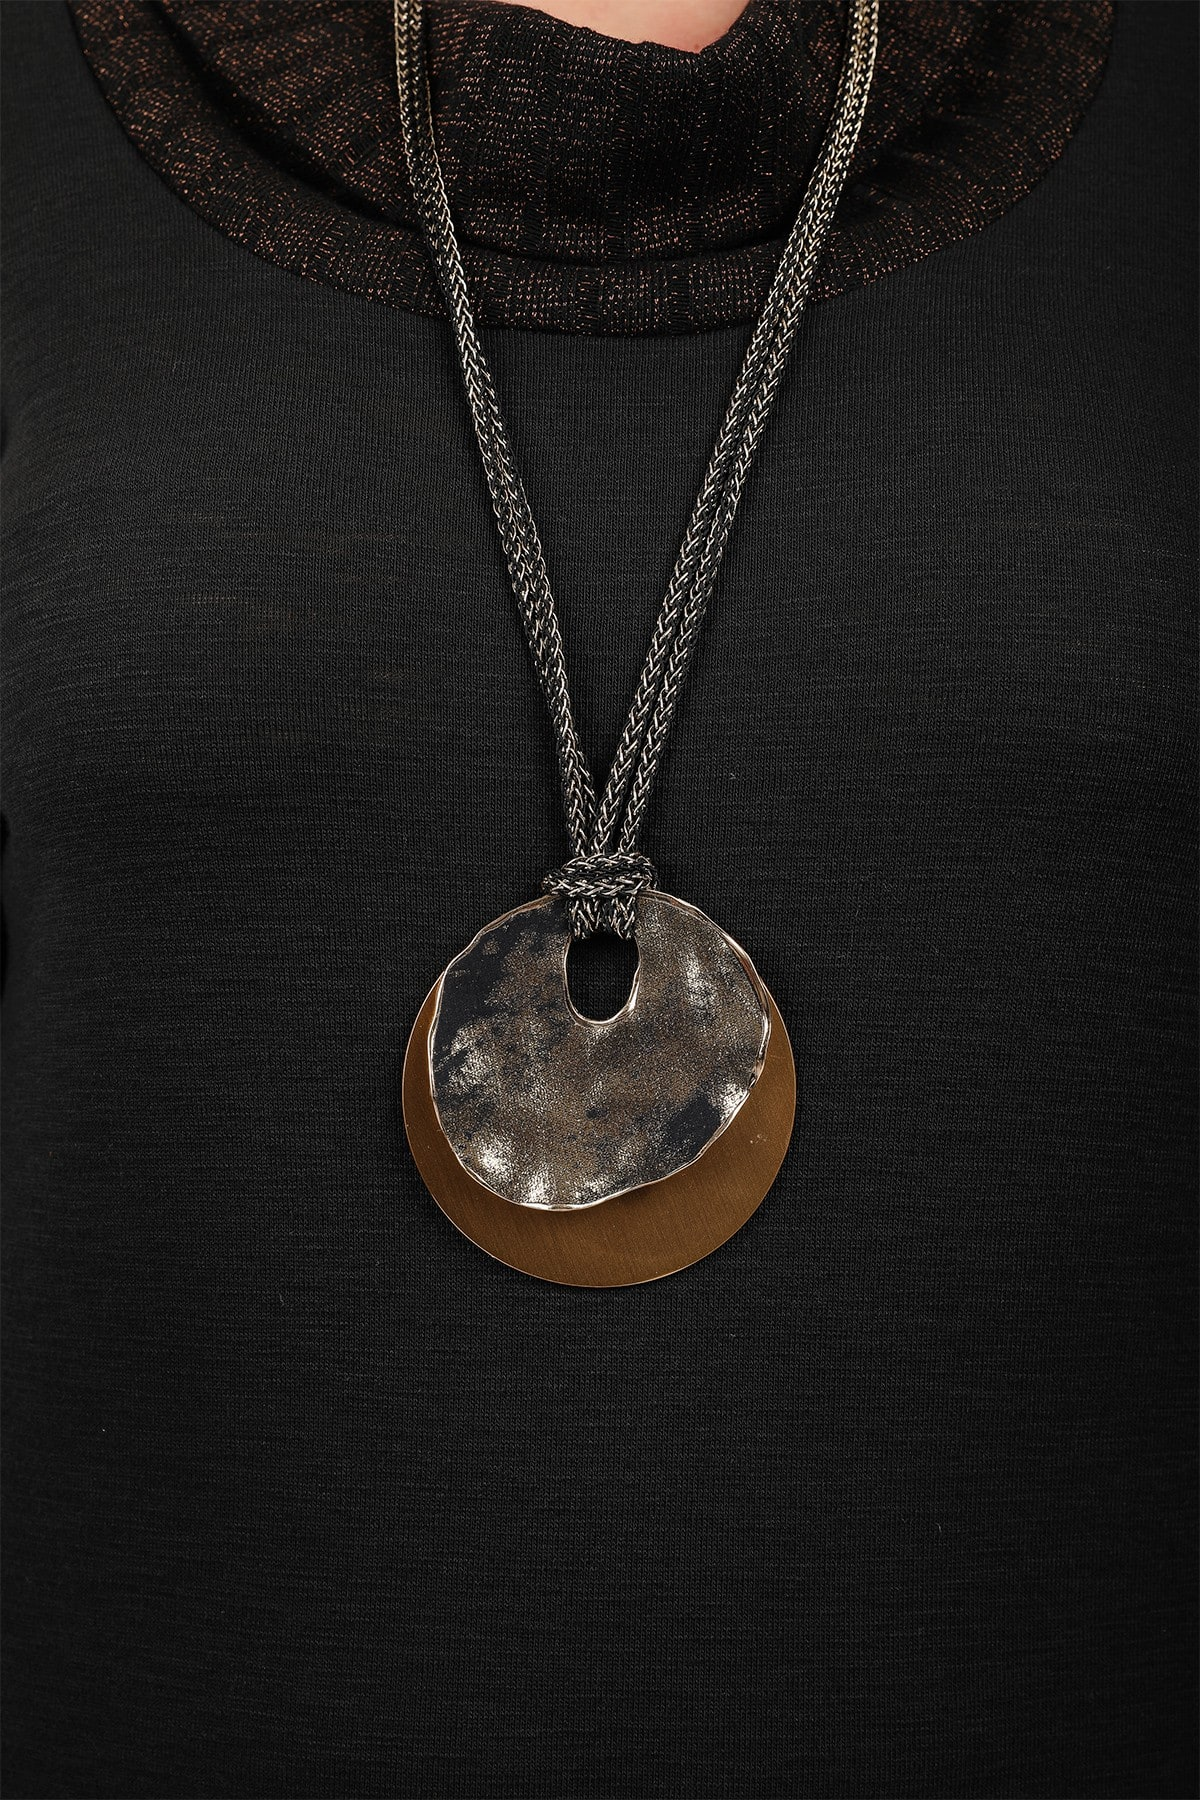 Long necklace with circles